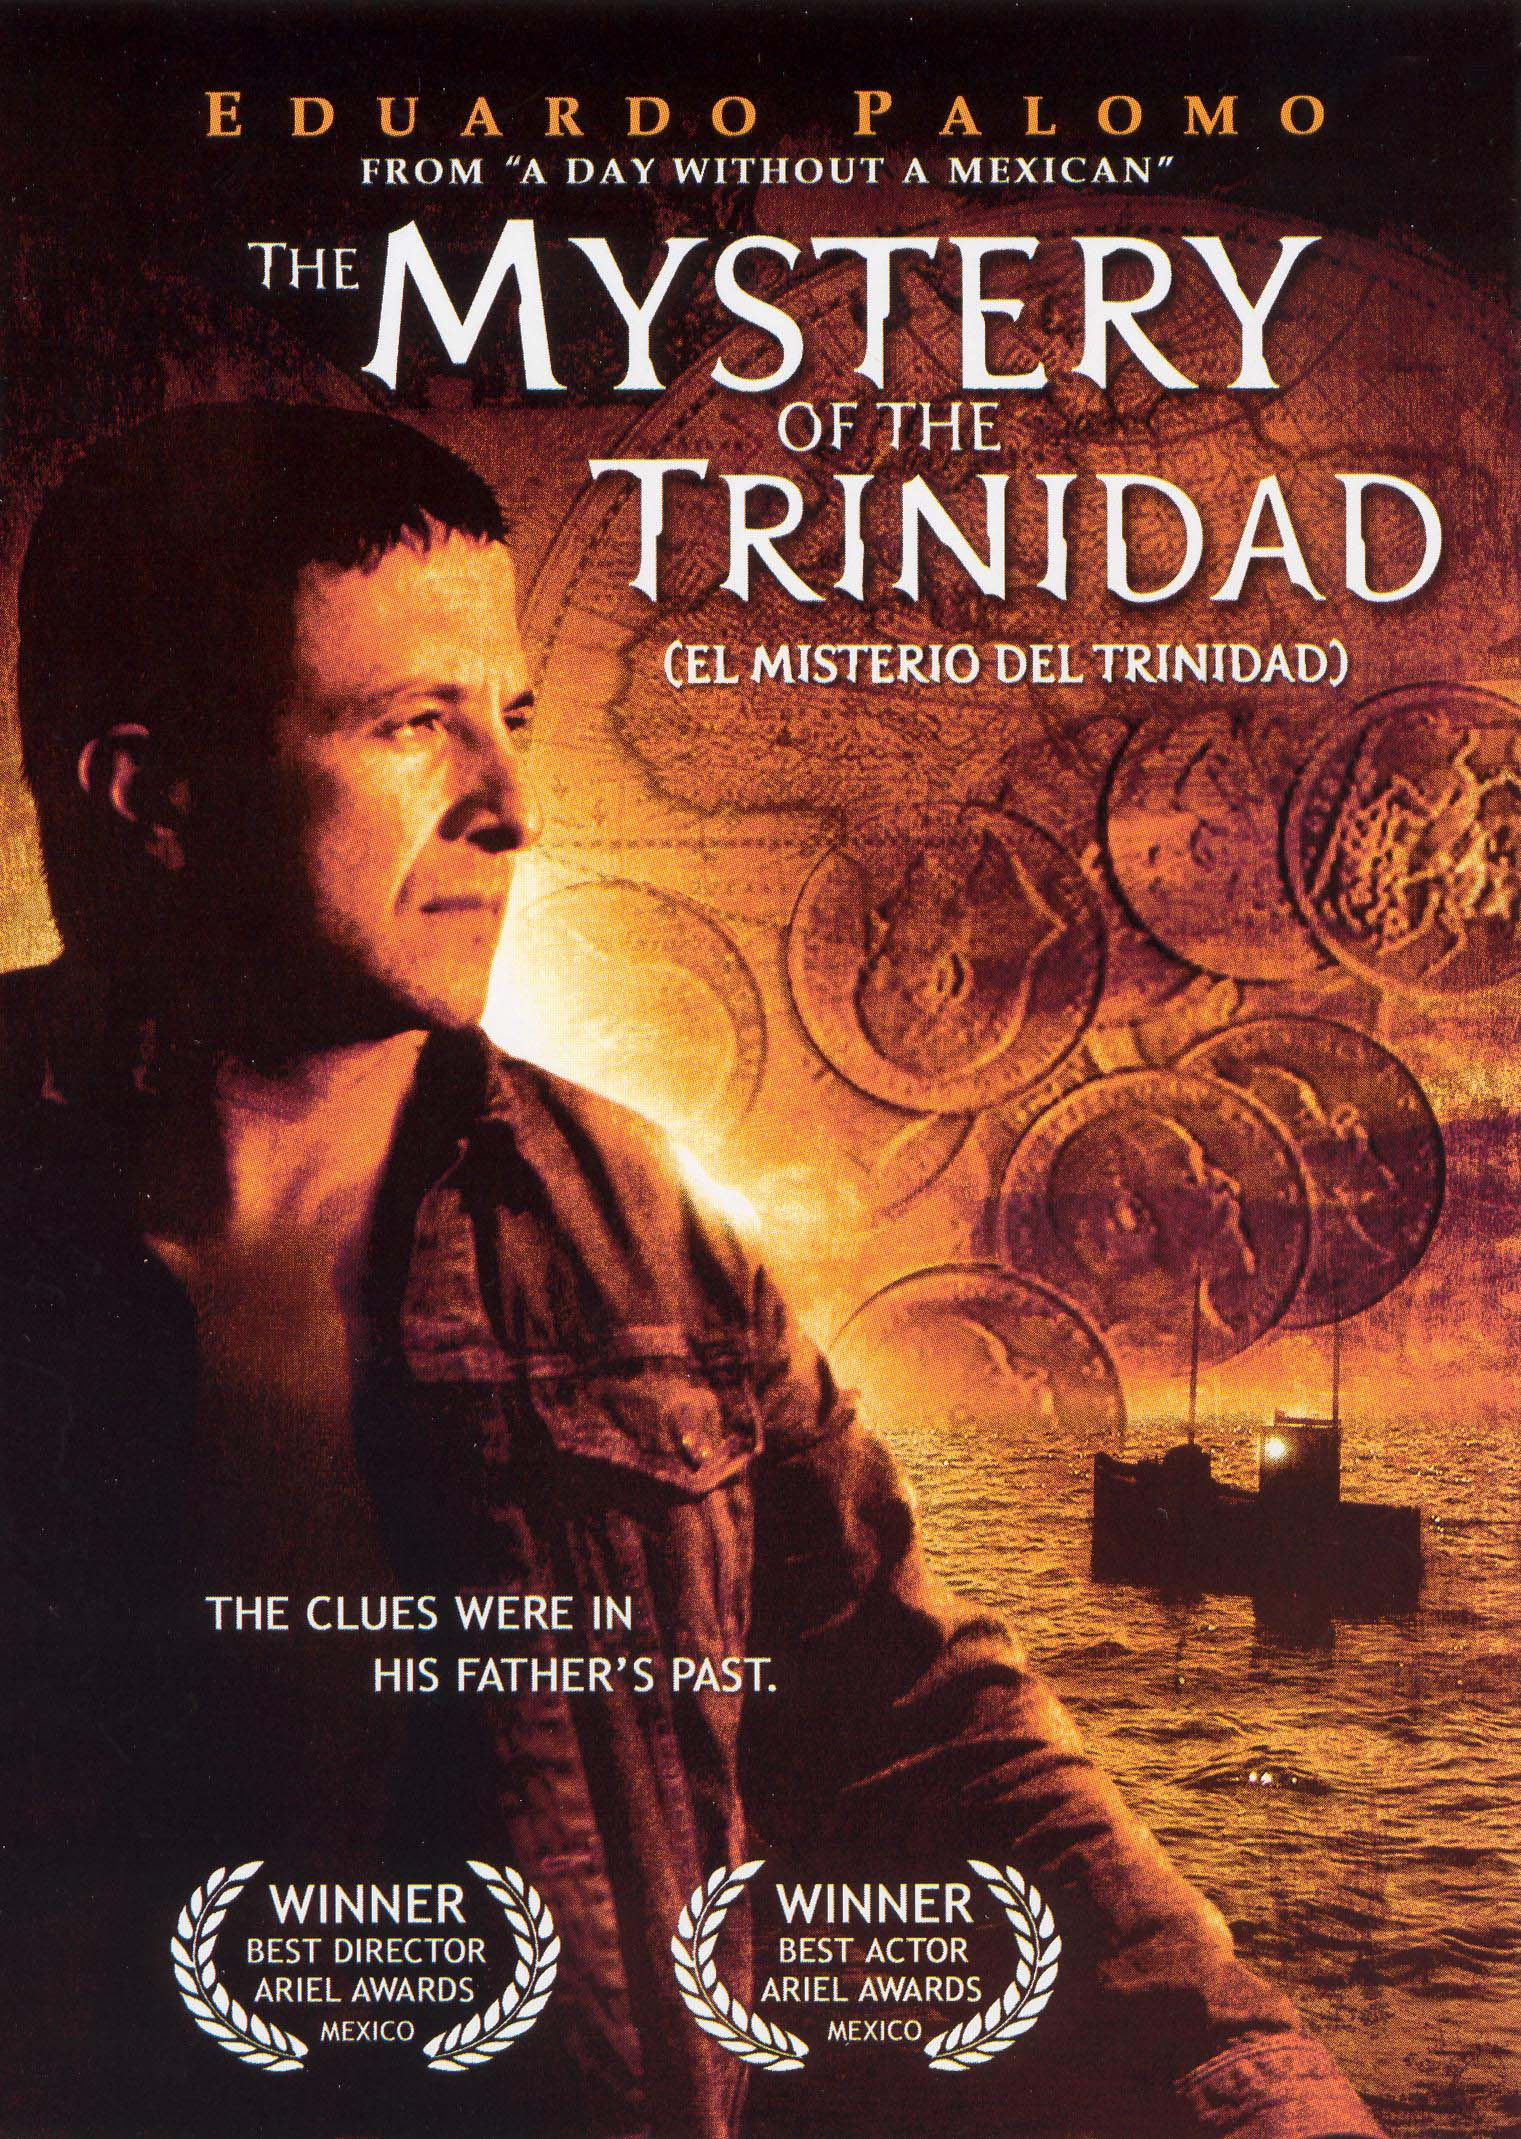 The Mystery of Trinidad